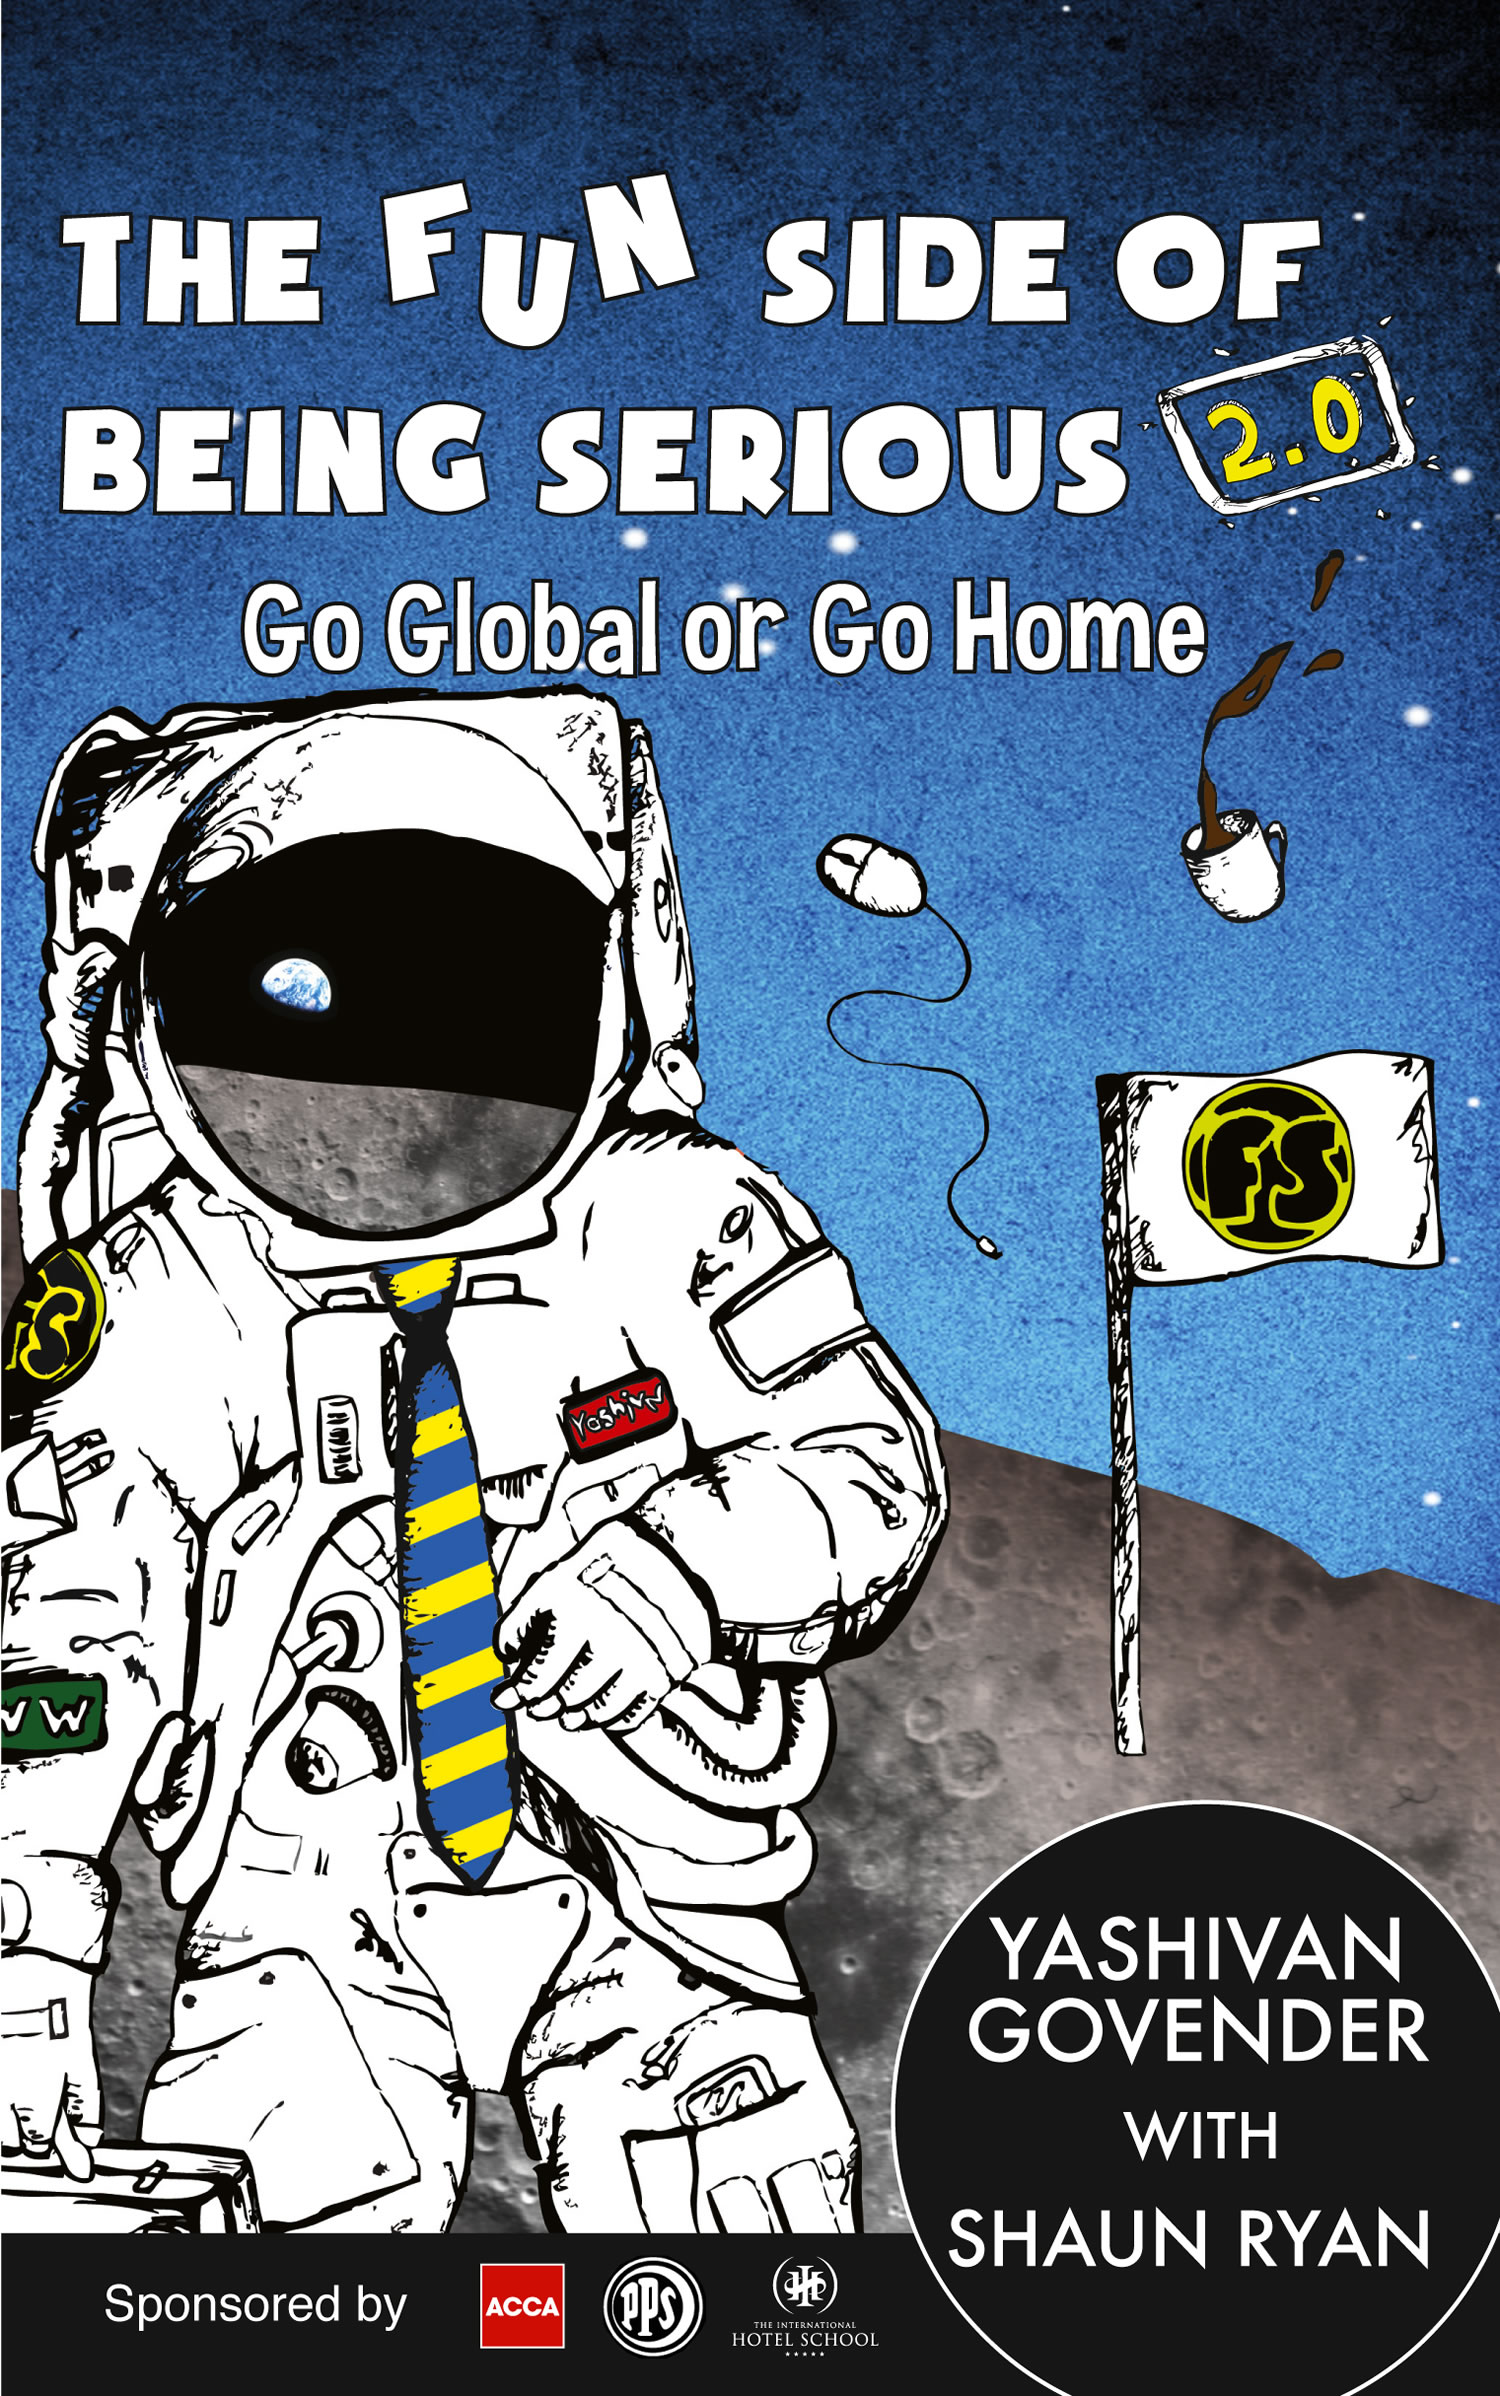 The Fun Side of Being Serious 2.0 - Go Global or Go Home by Yashivan Govender with Shaun Ryan